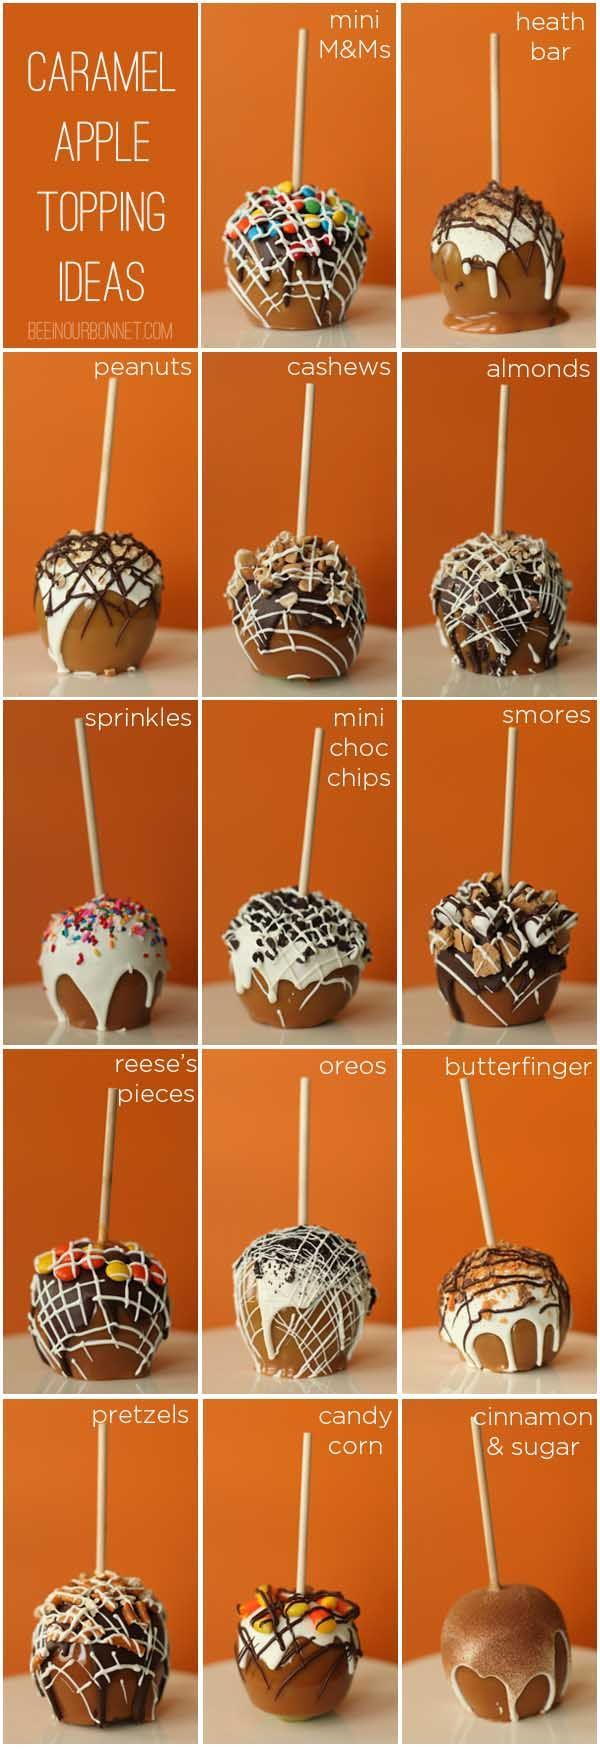 Caramel apple topping ideas, and tips from Bee in Our Bonnet